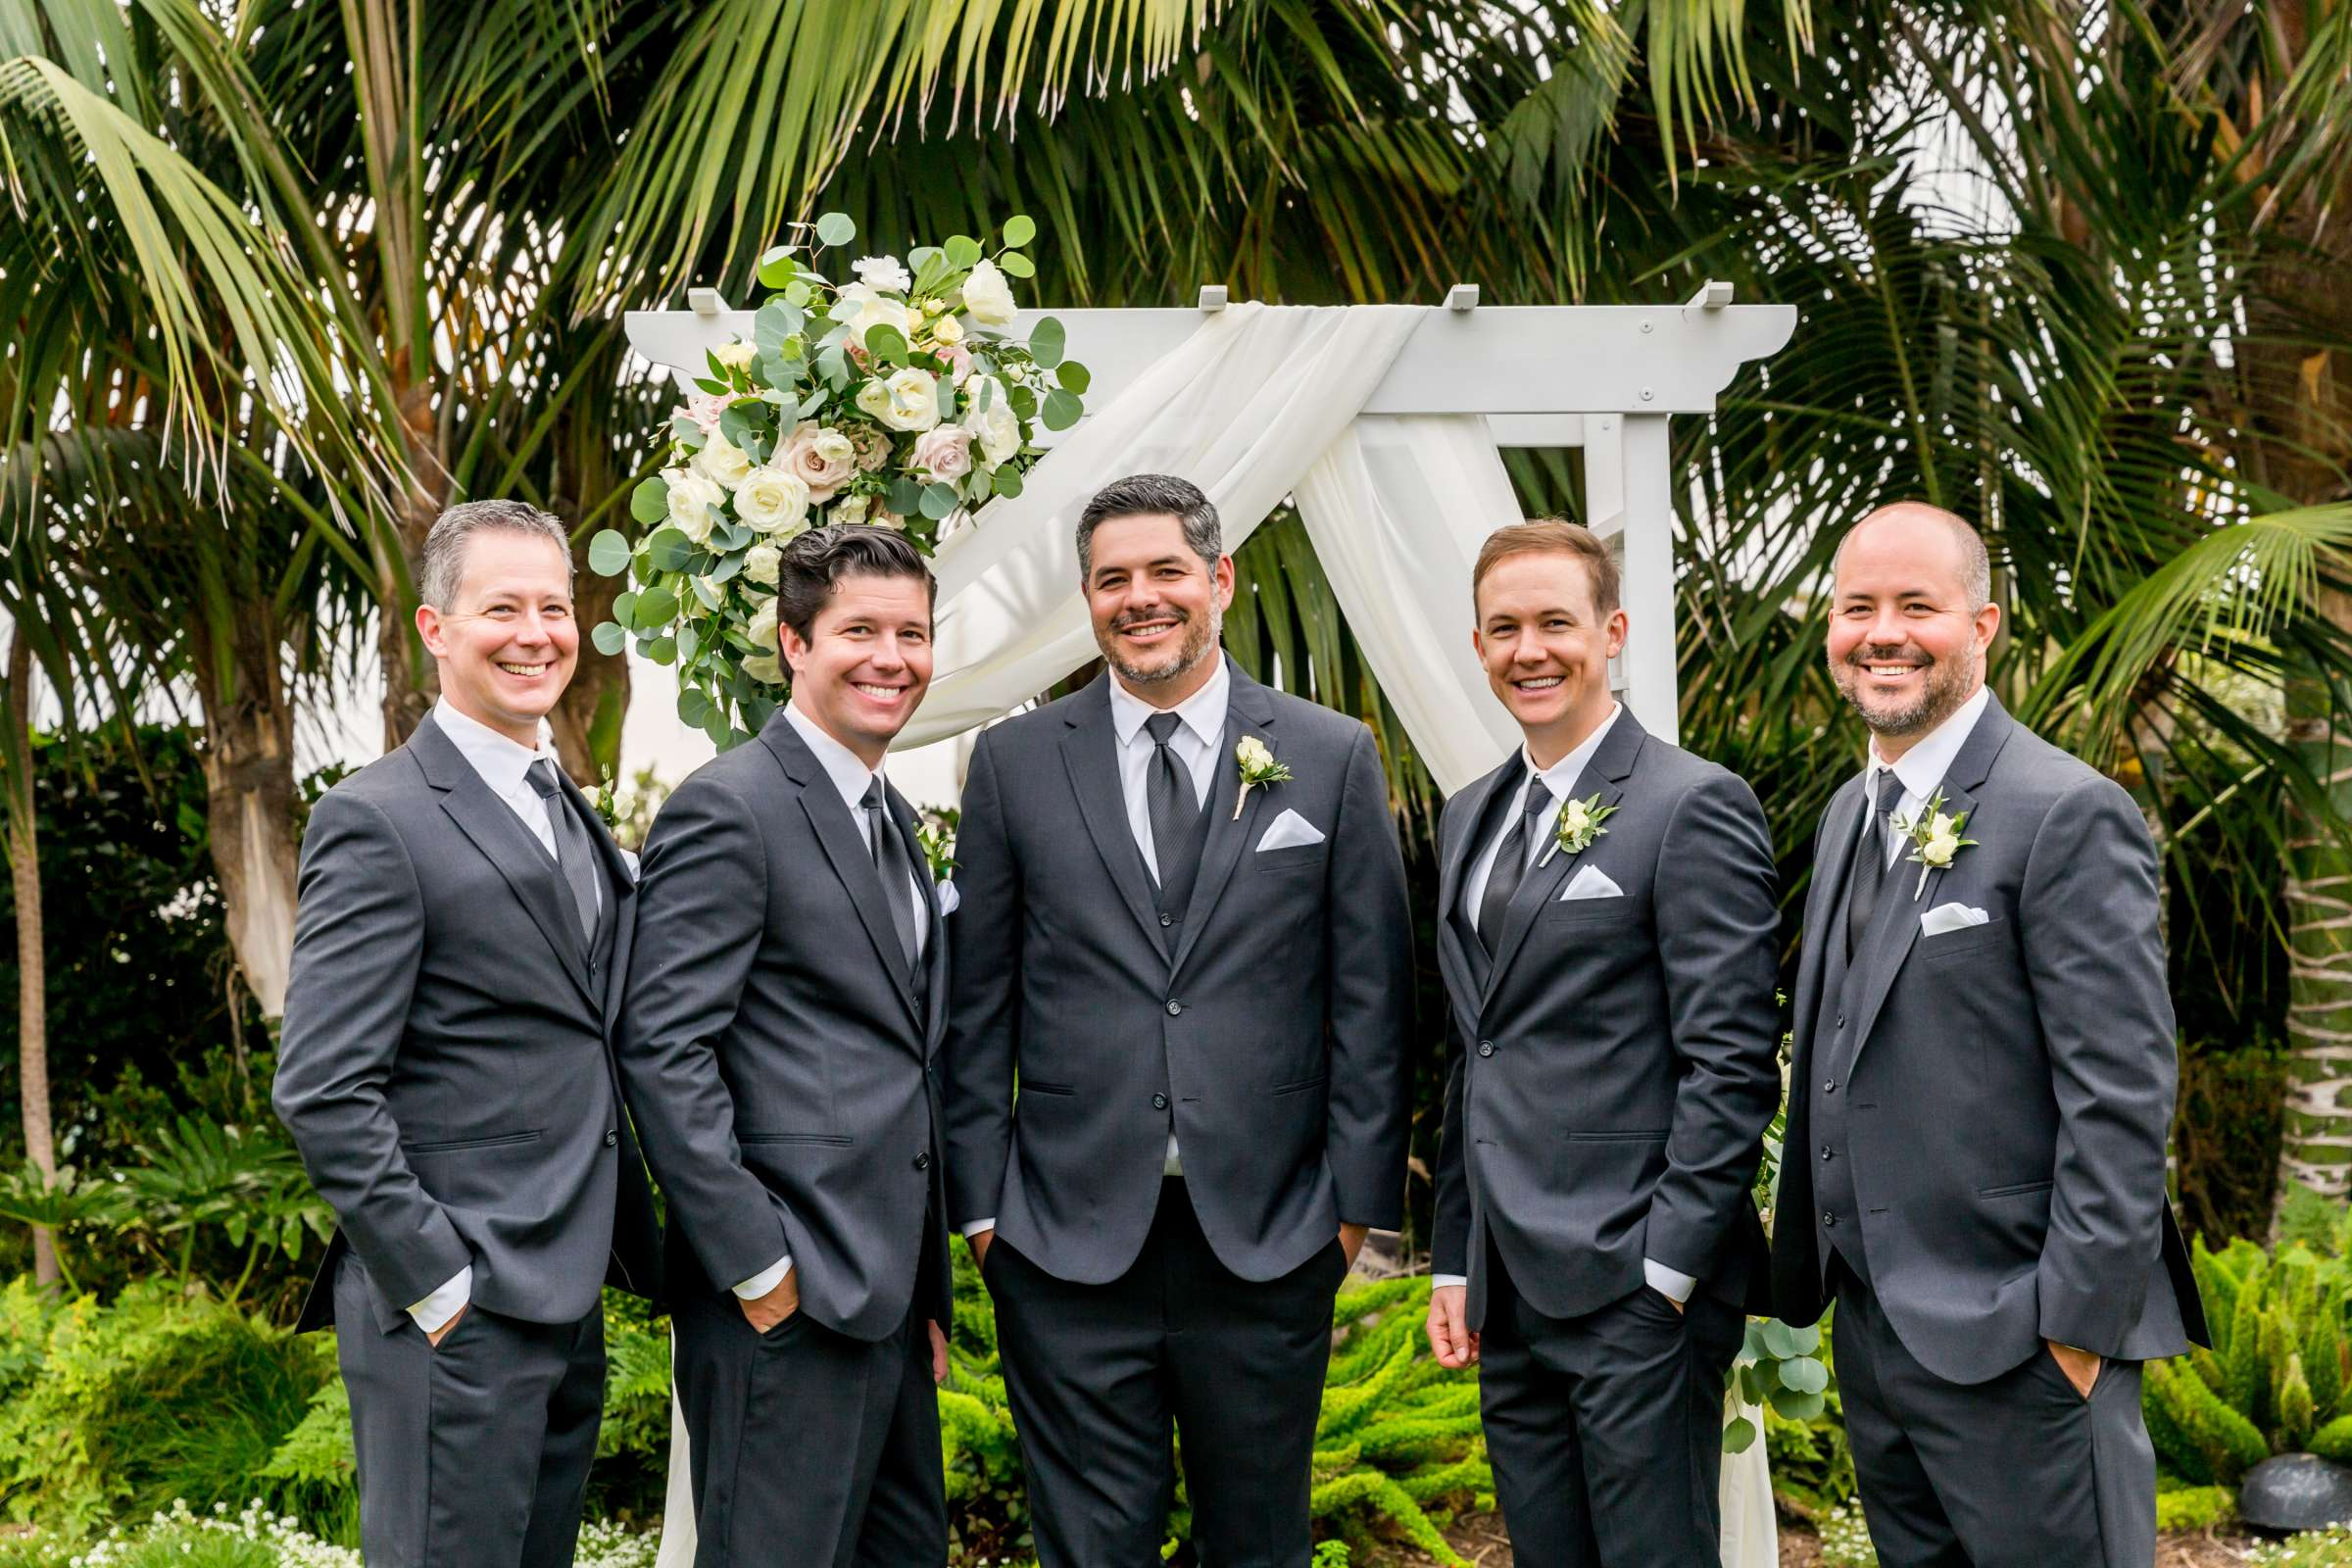 Cape Rey Carlsbad, A Hilton Resort Wedding, Michelle and Justin Wedding Photo #75 by True Photography